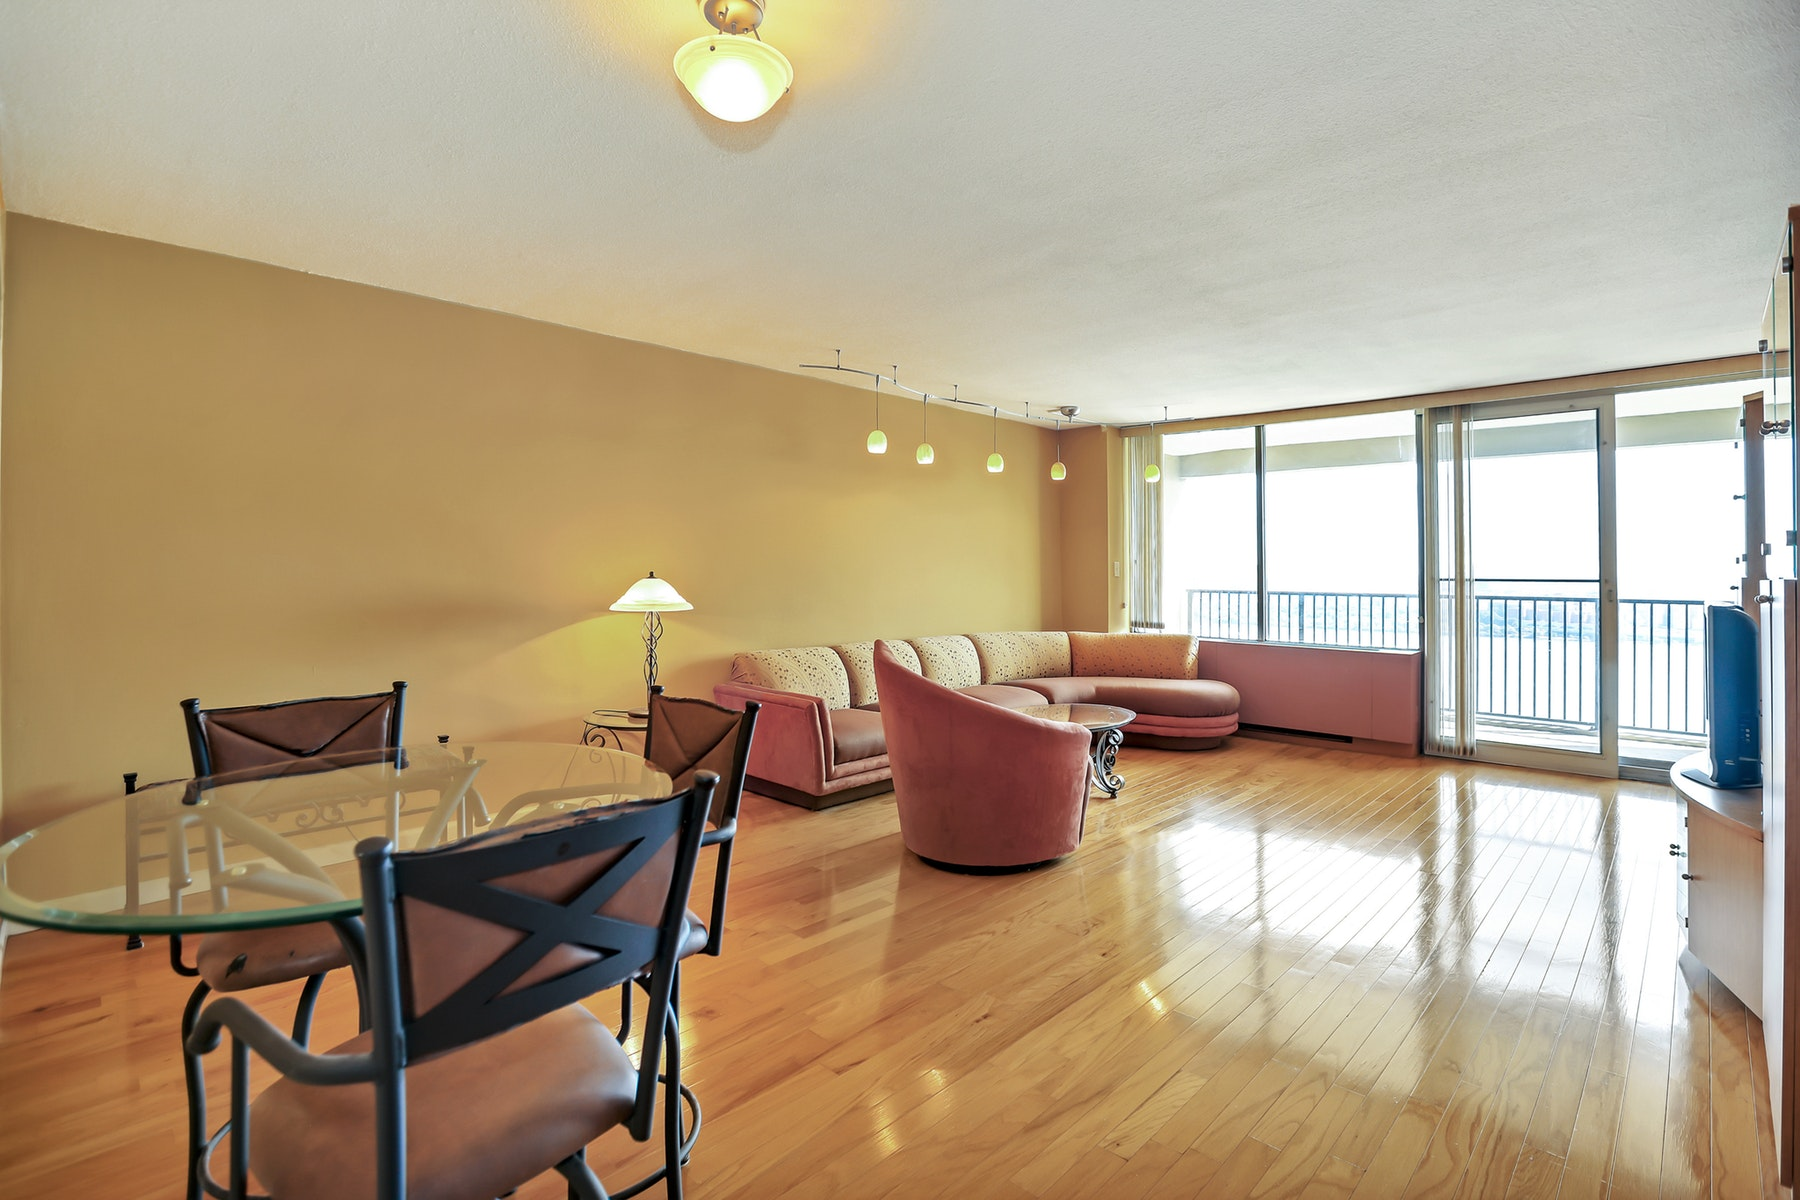 Co-op Properties for Rent at Horizon House 6 Horizon Rd #1805, Fort Lee, New Jersey 07024 United States